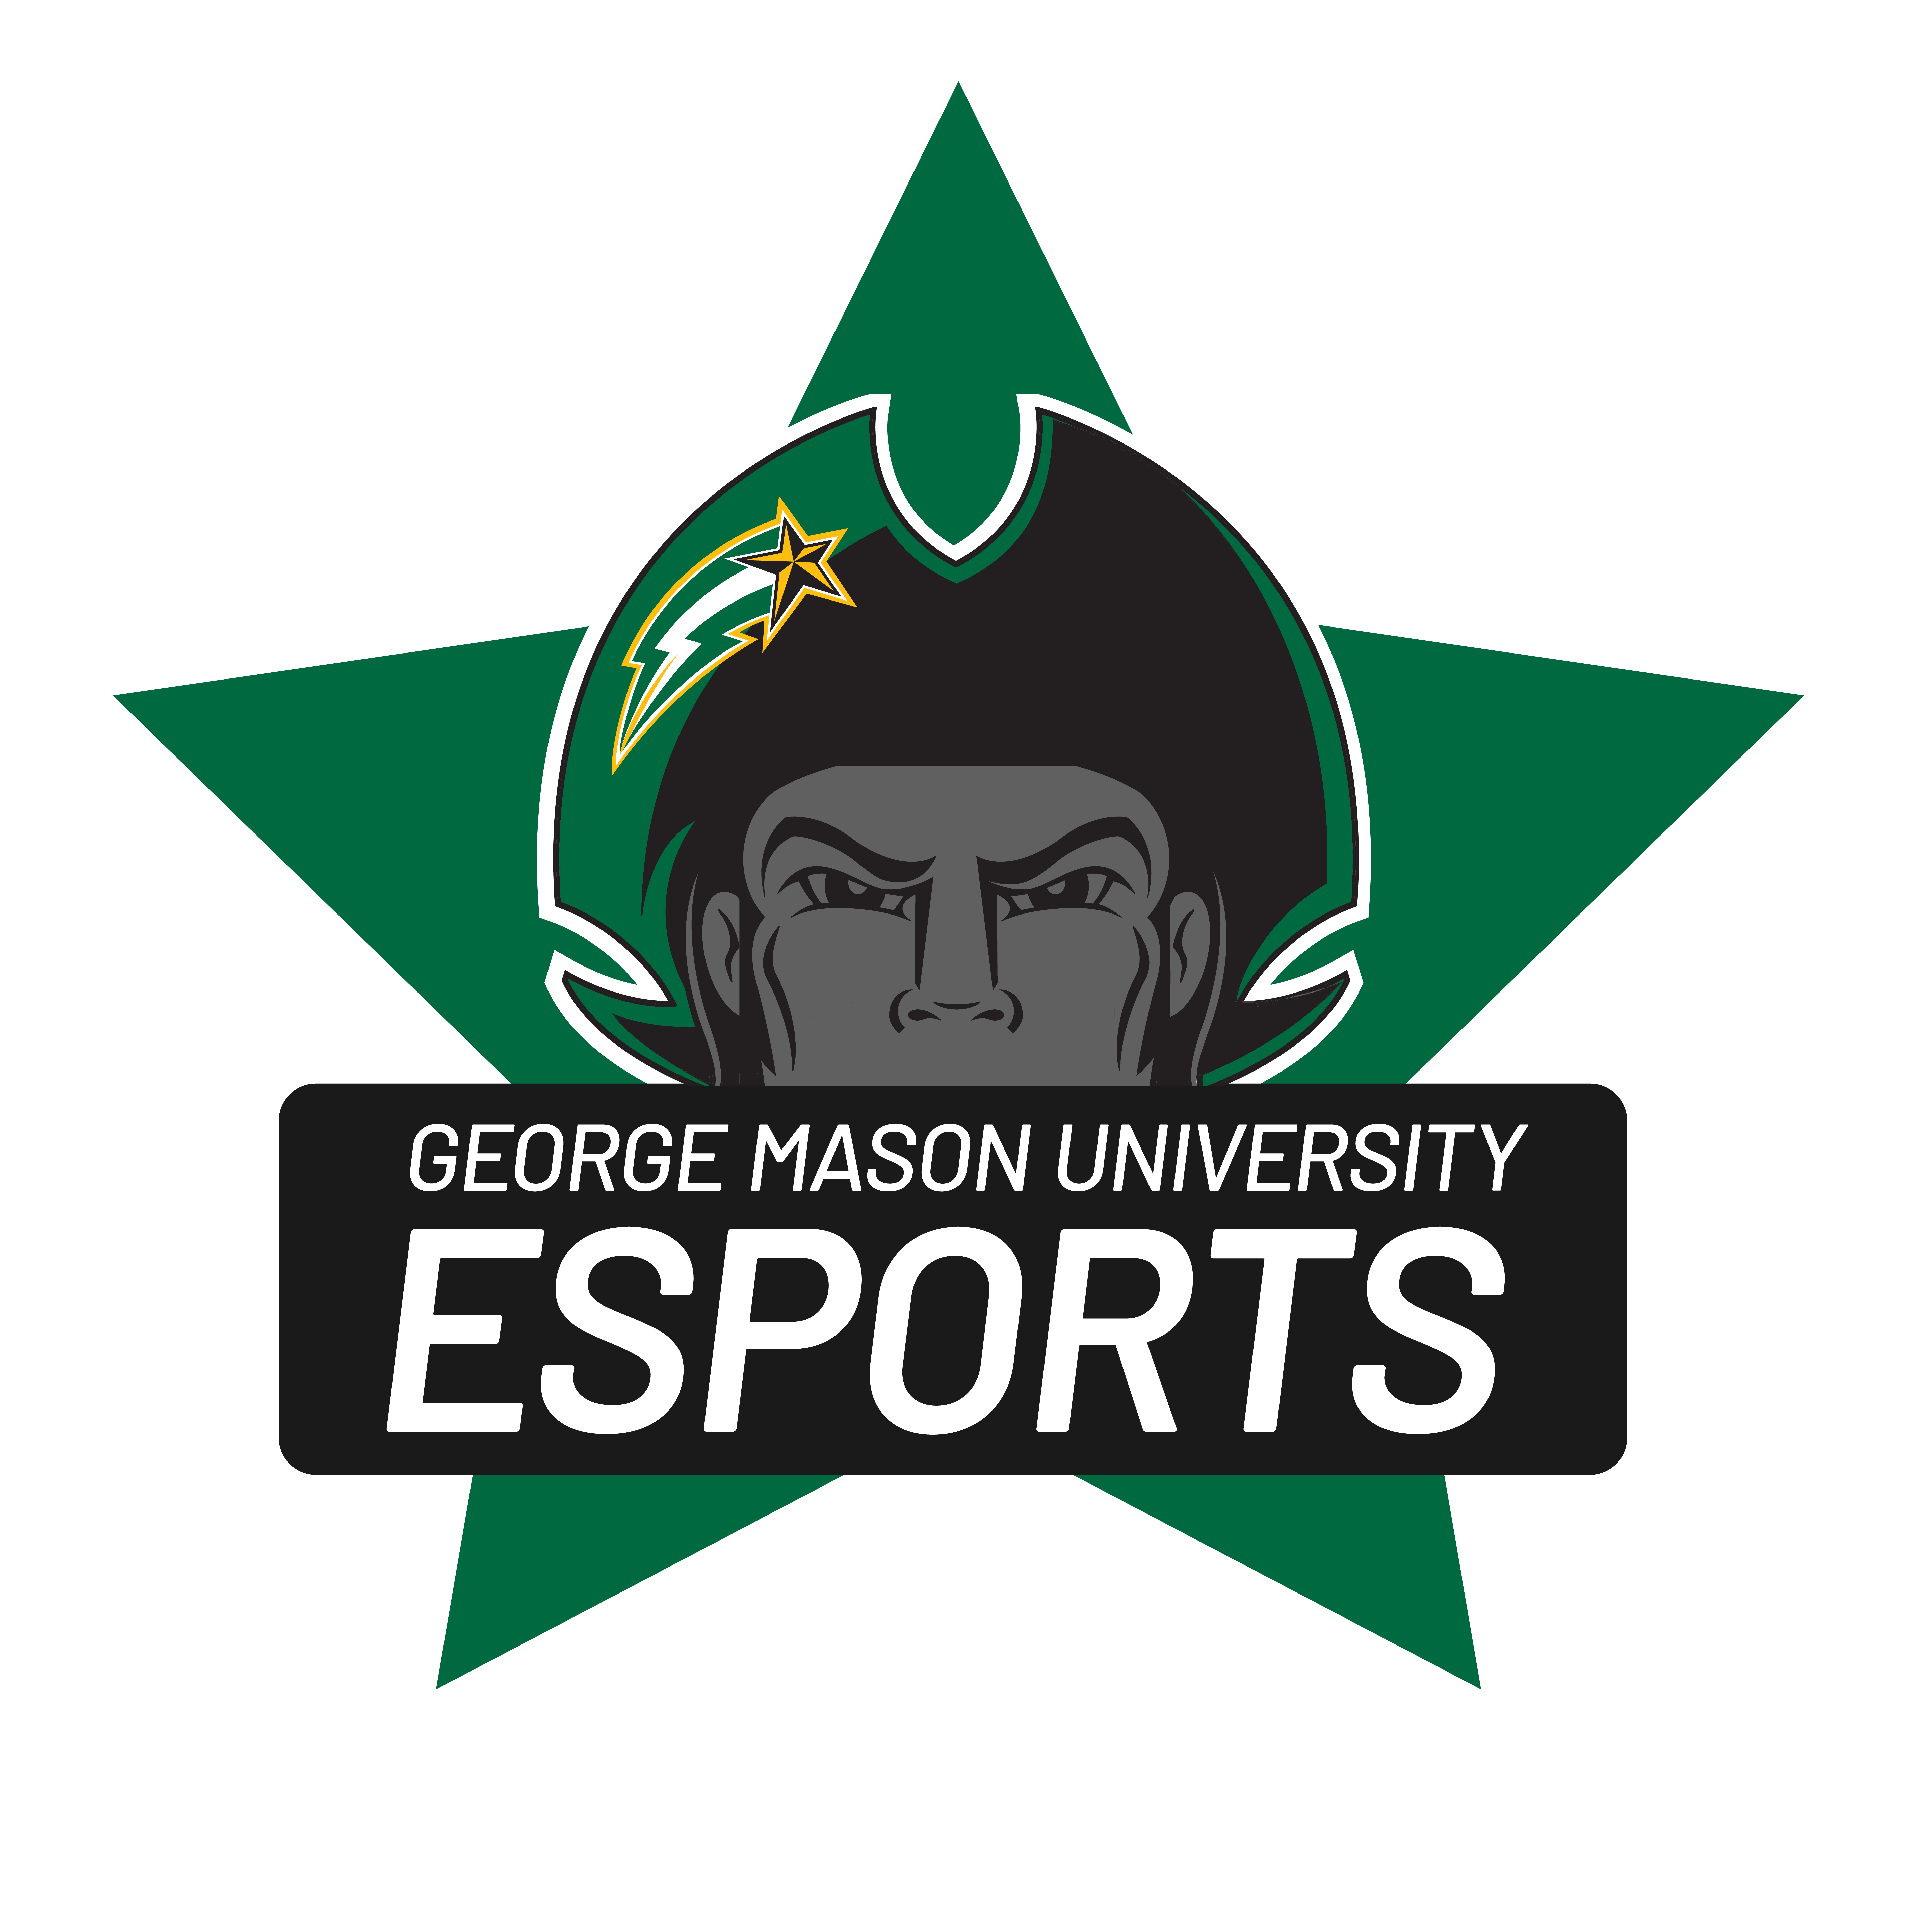 GMU A-Team's logo